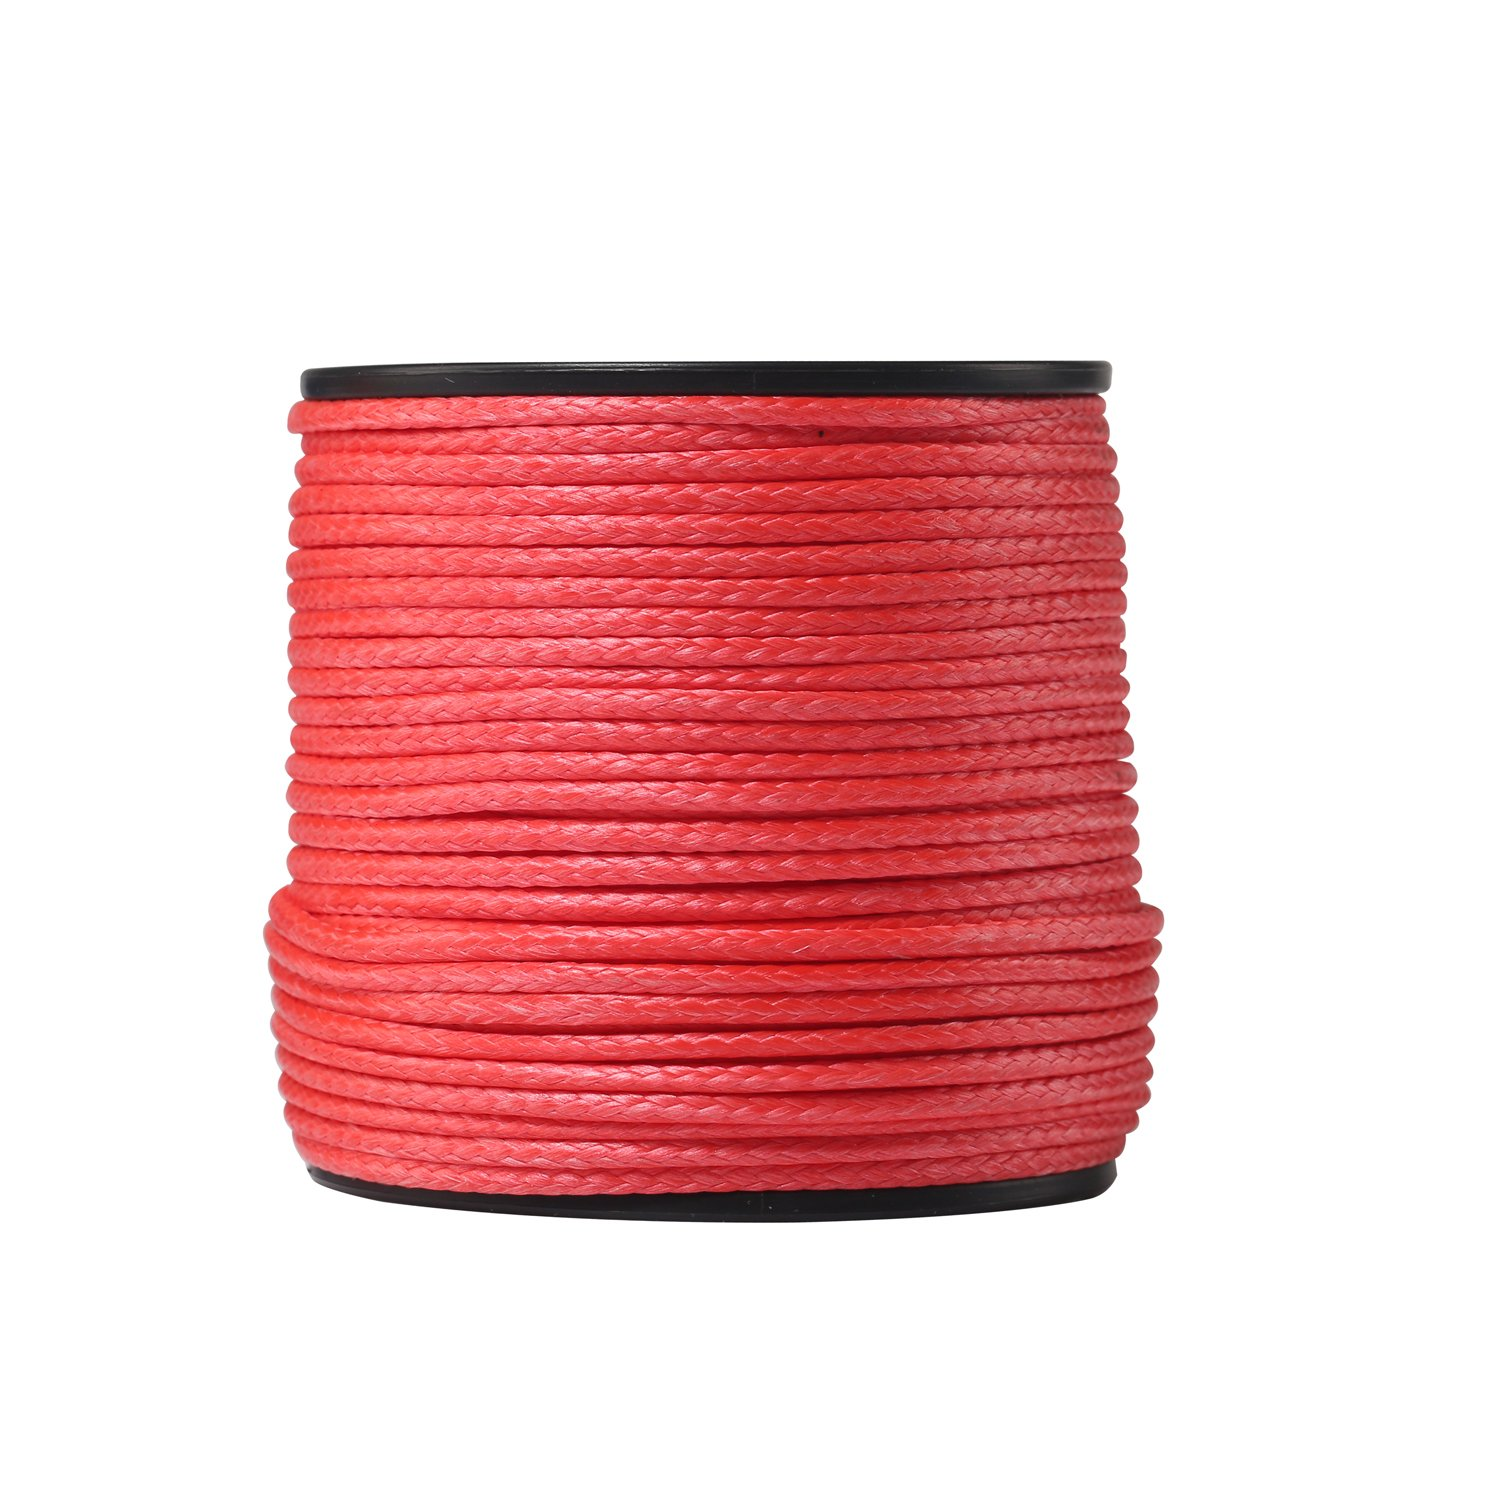 Ymiss UHMWPE 2mm(5/64'')x50M (165') Long Spearfishing Line-Red Color